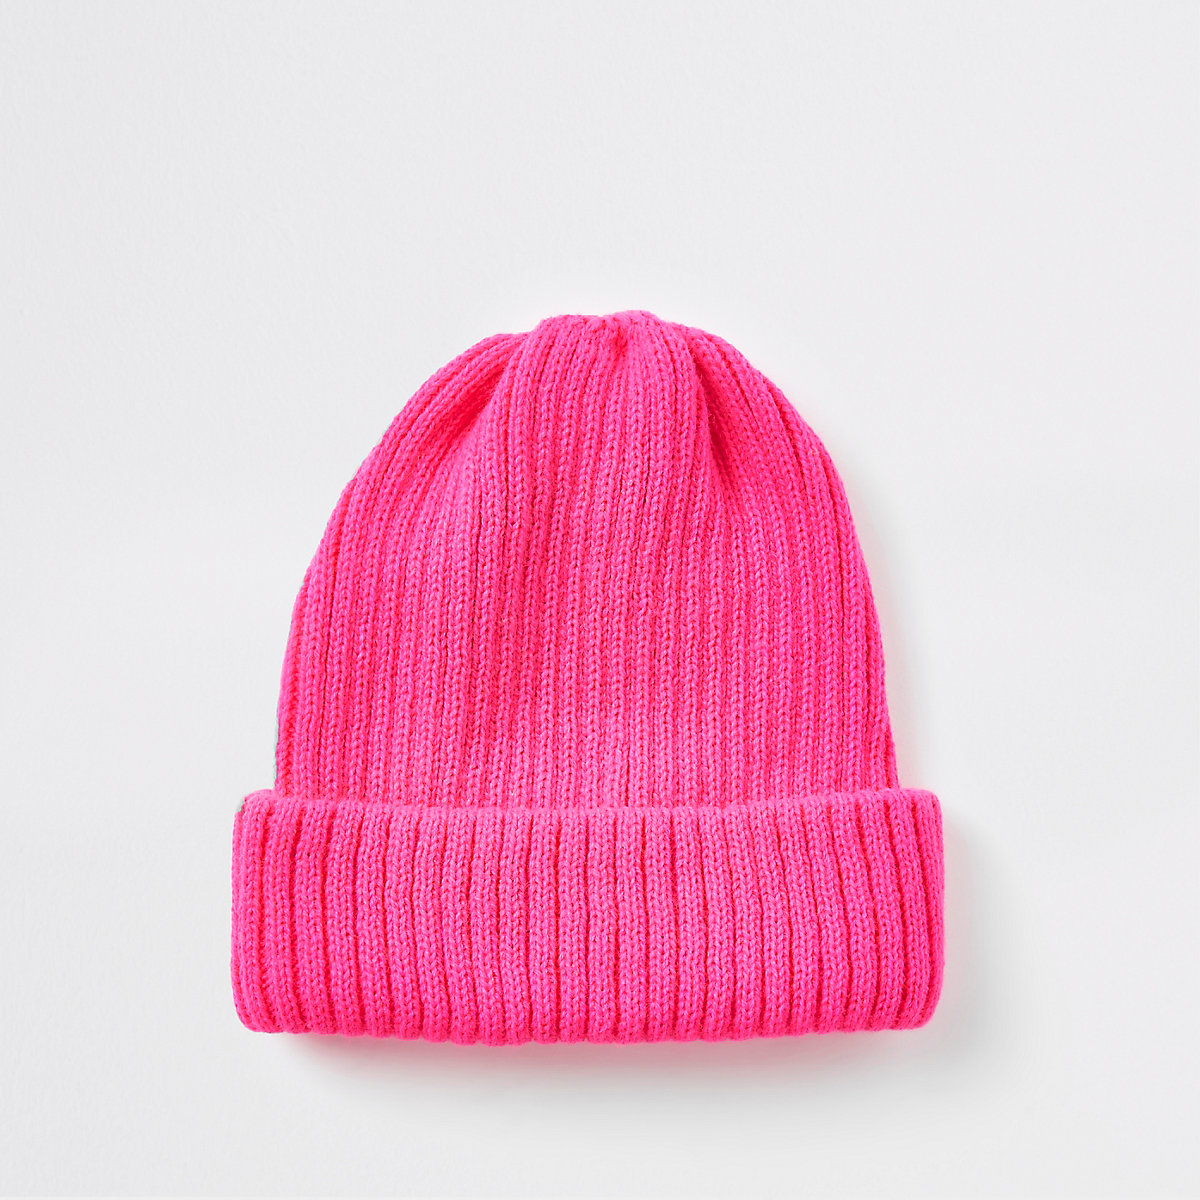 Neon pink fisherman knit beanie hat